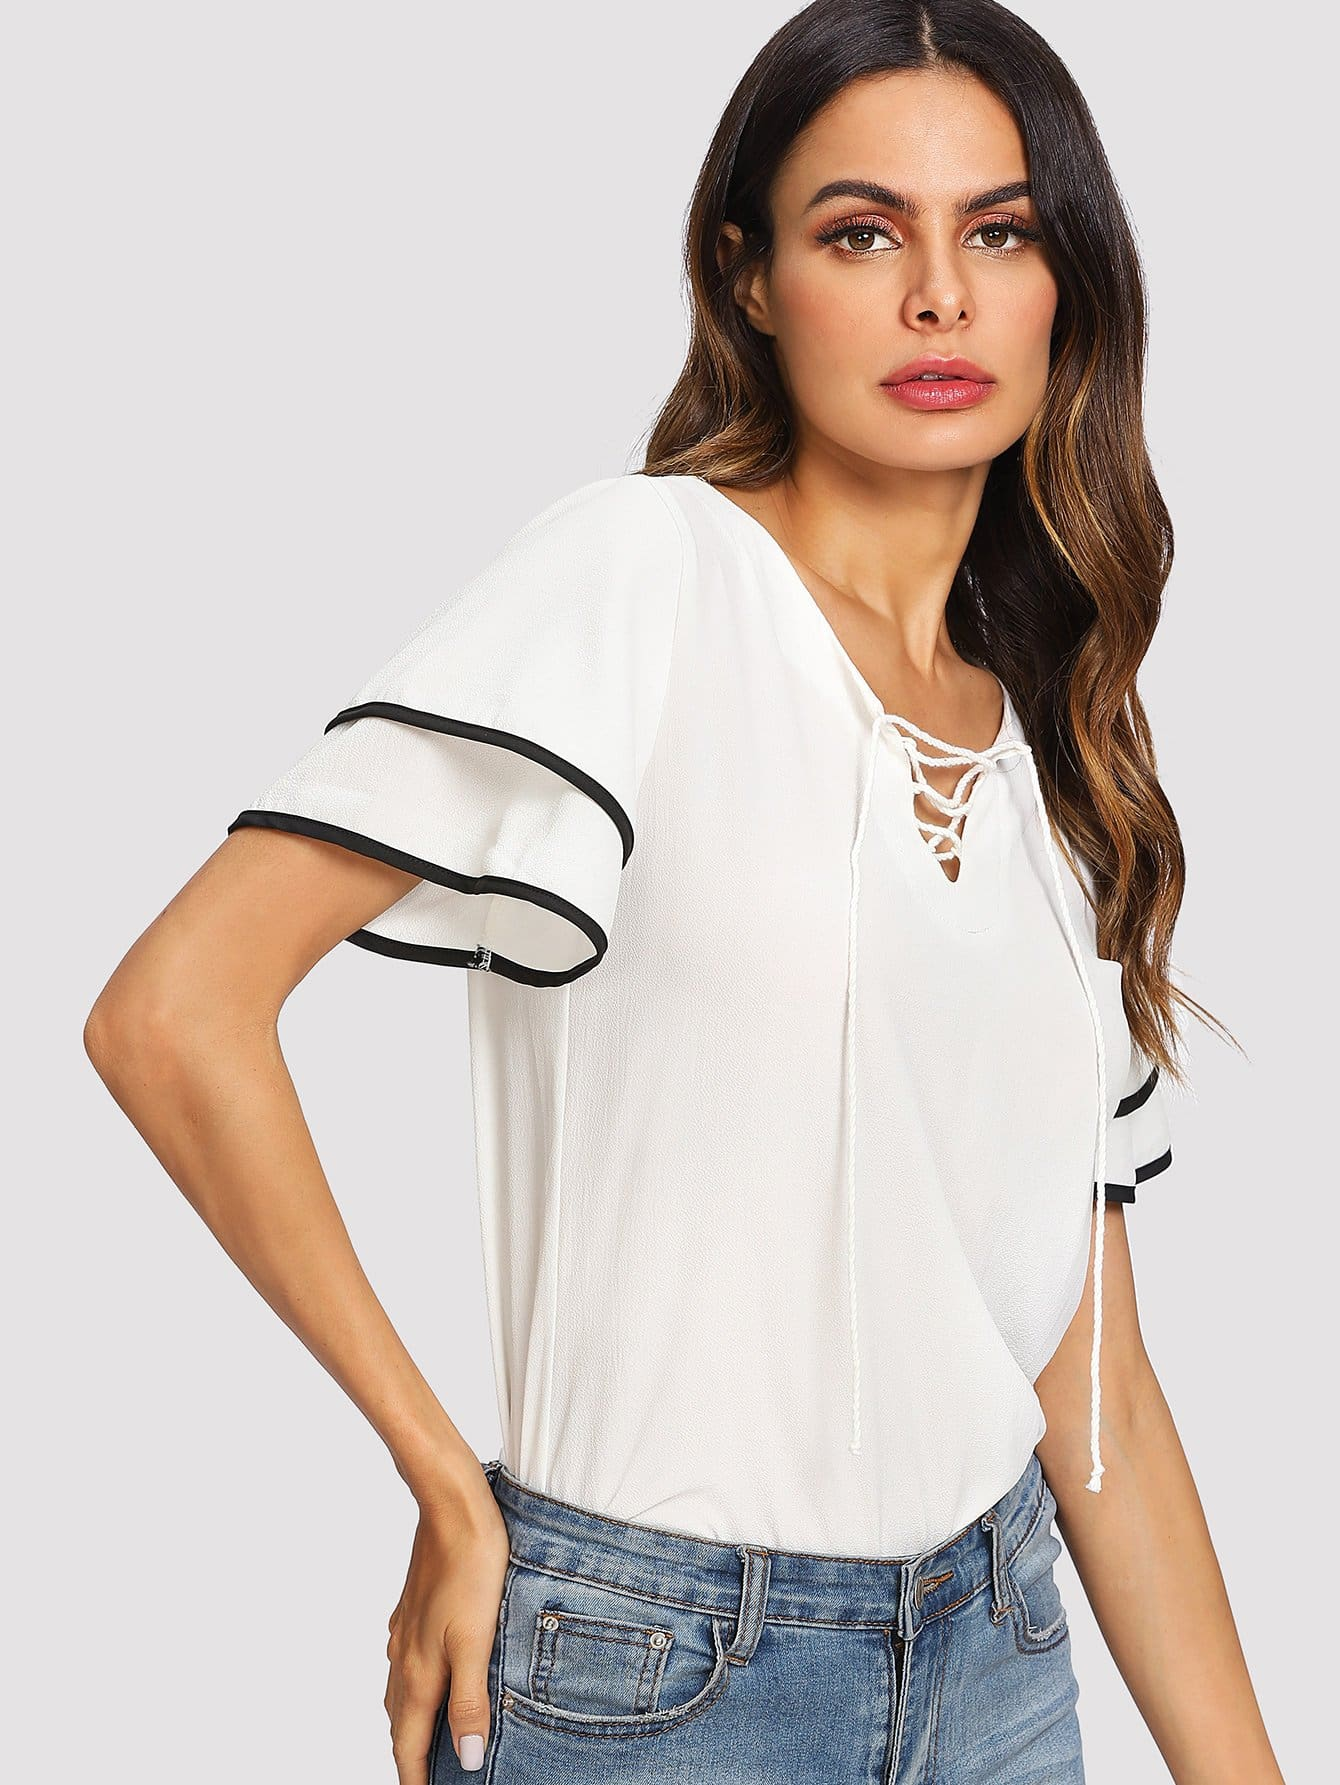 Lace Up Front Flare Sleeve Blouse lace up front flare sleeve blouse